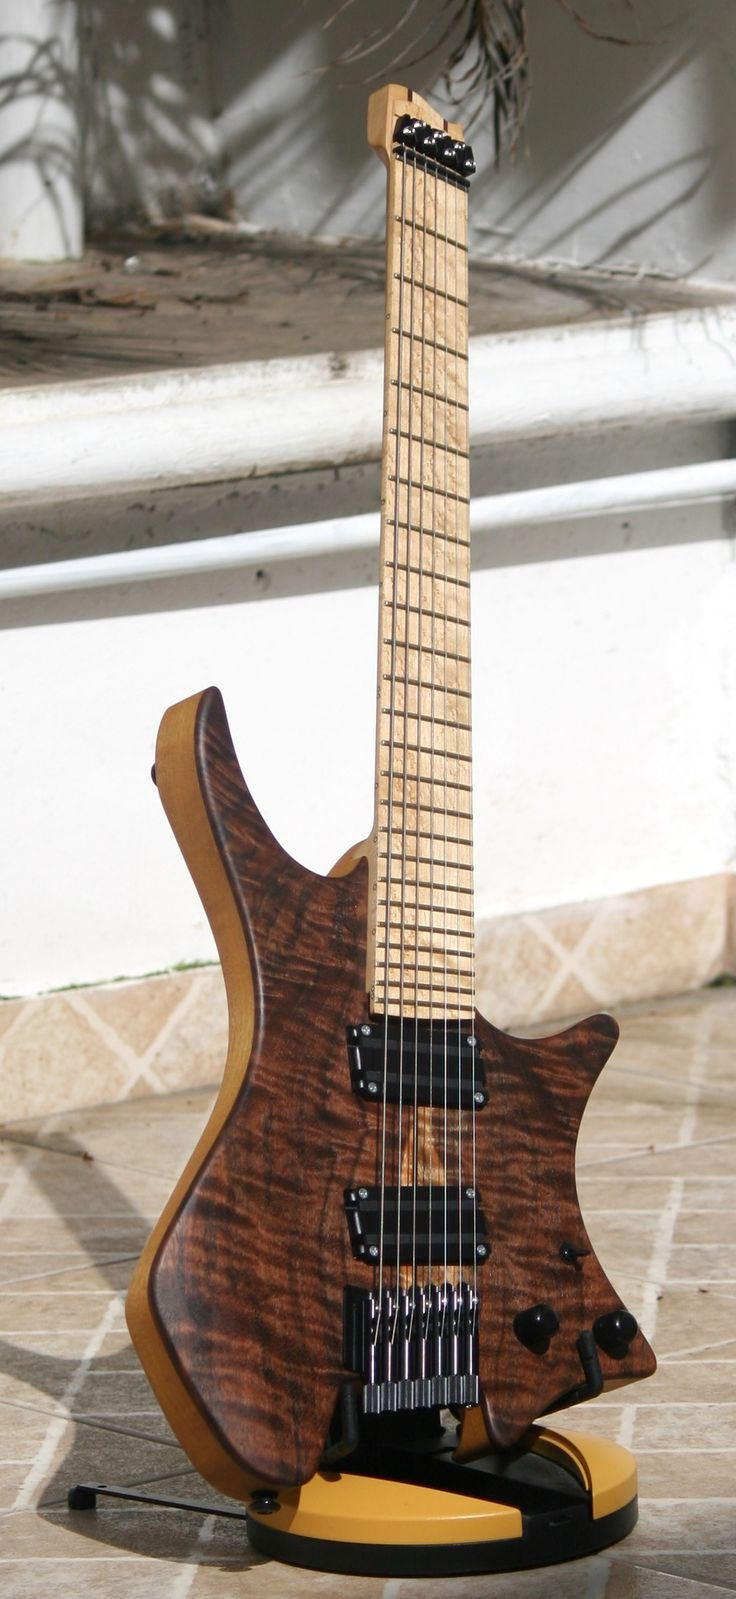 Strandberg boden 7 1 3 cool guitars pinterest for Strandberg boden 7